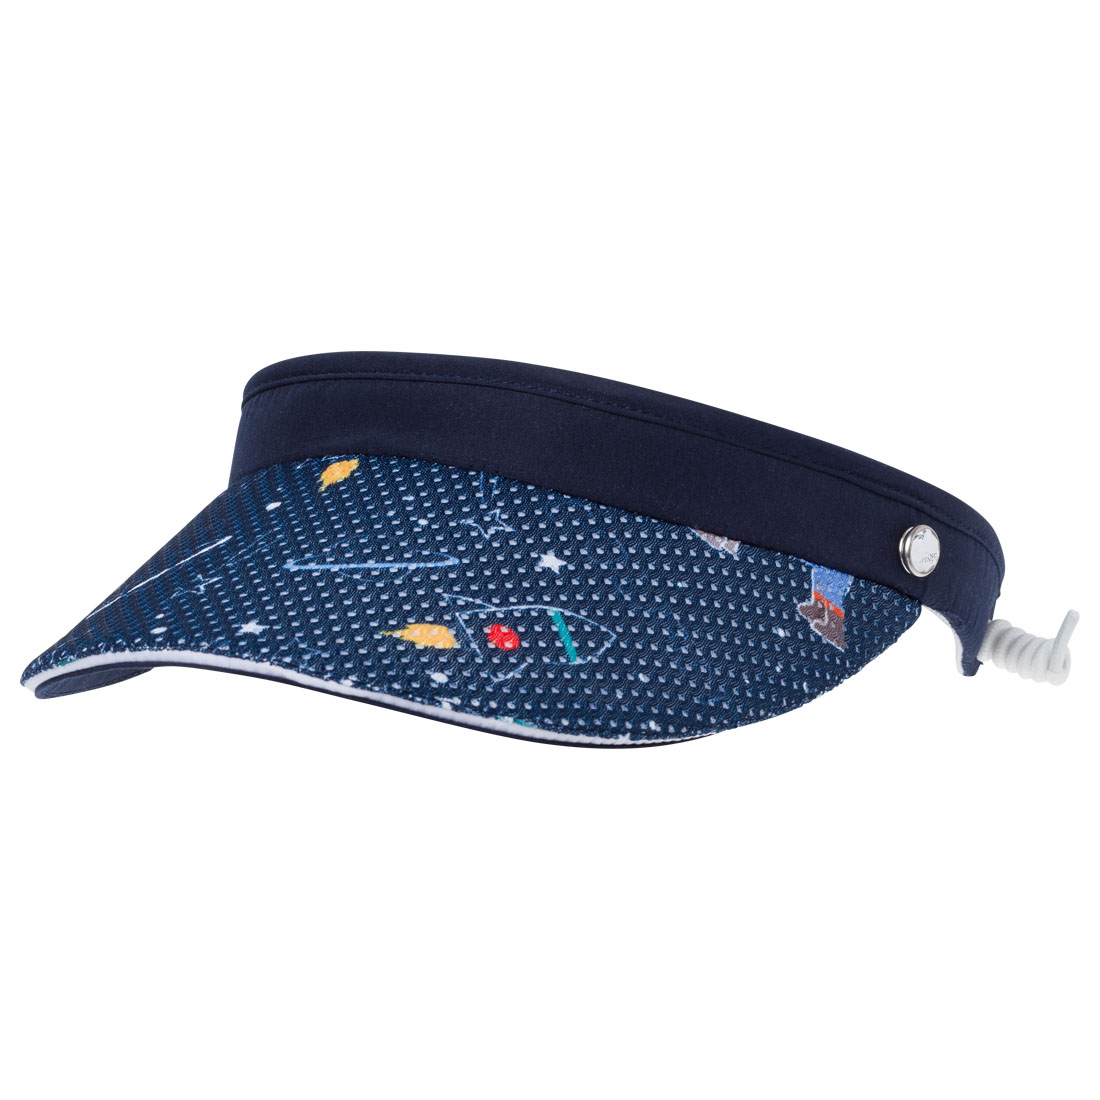 Damen Visor mit Allovermuster